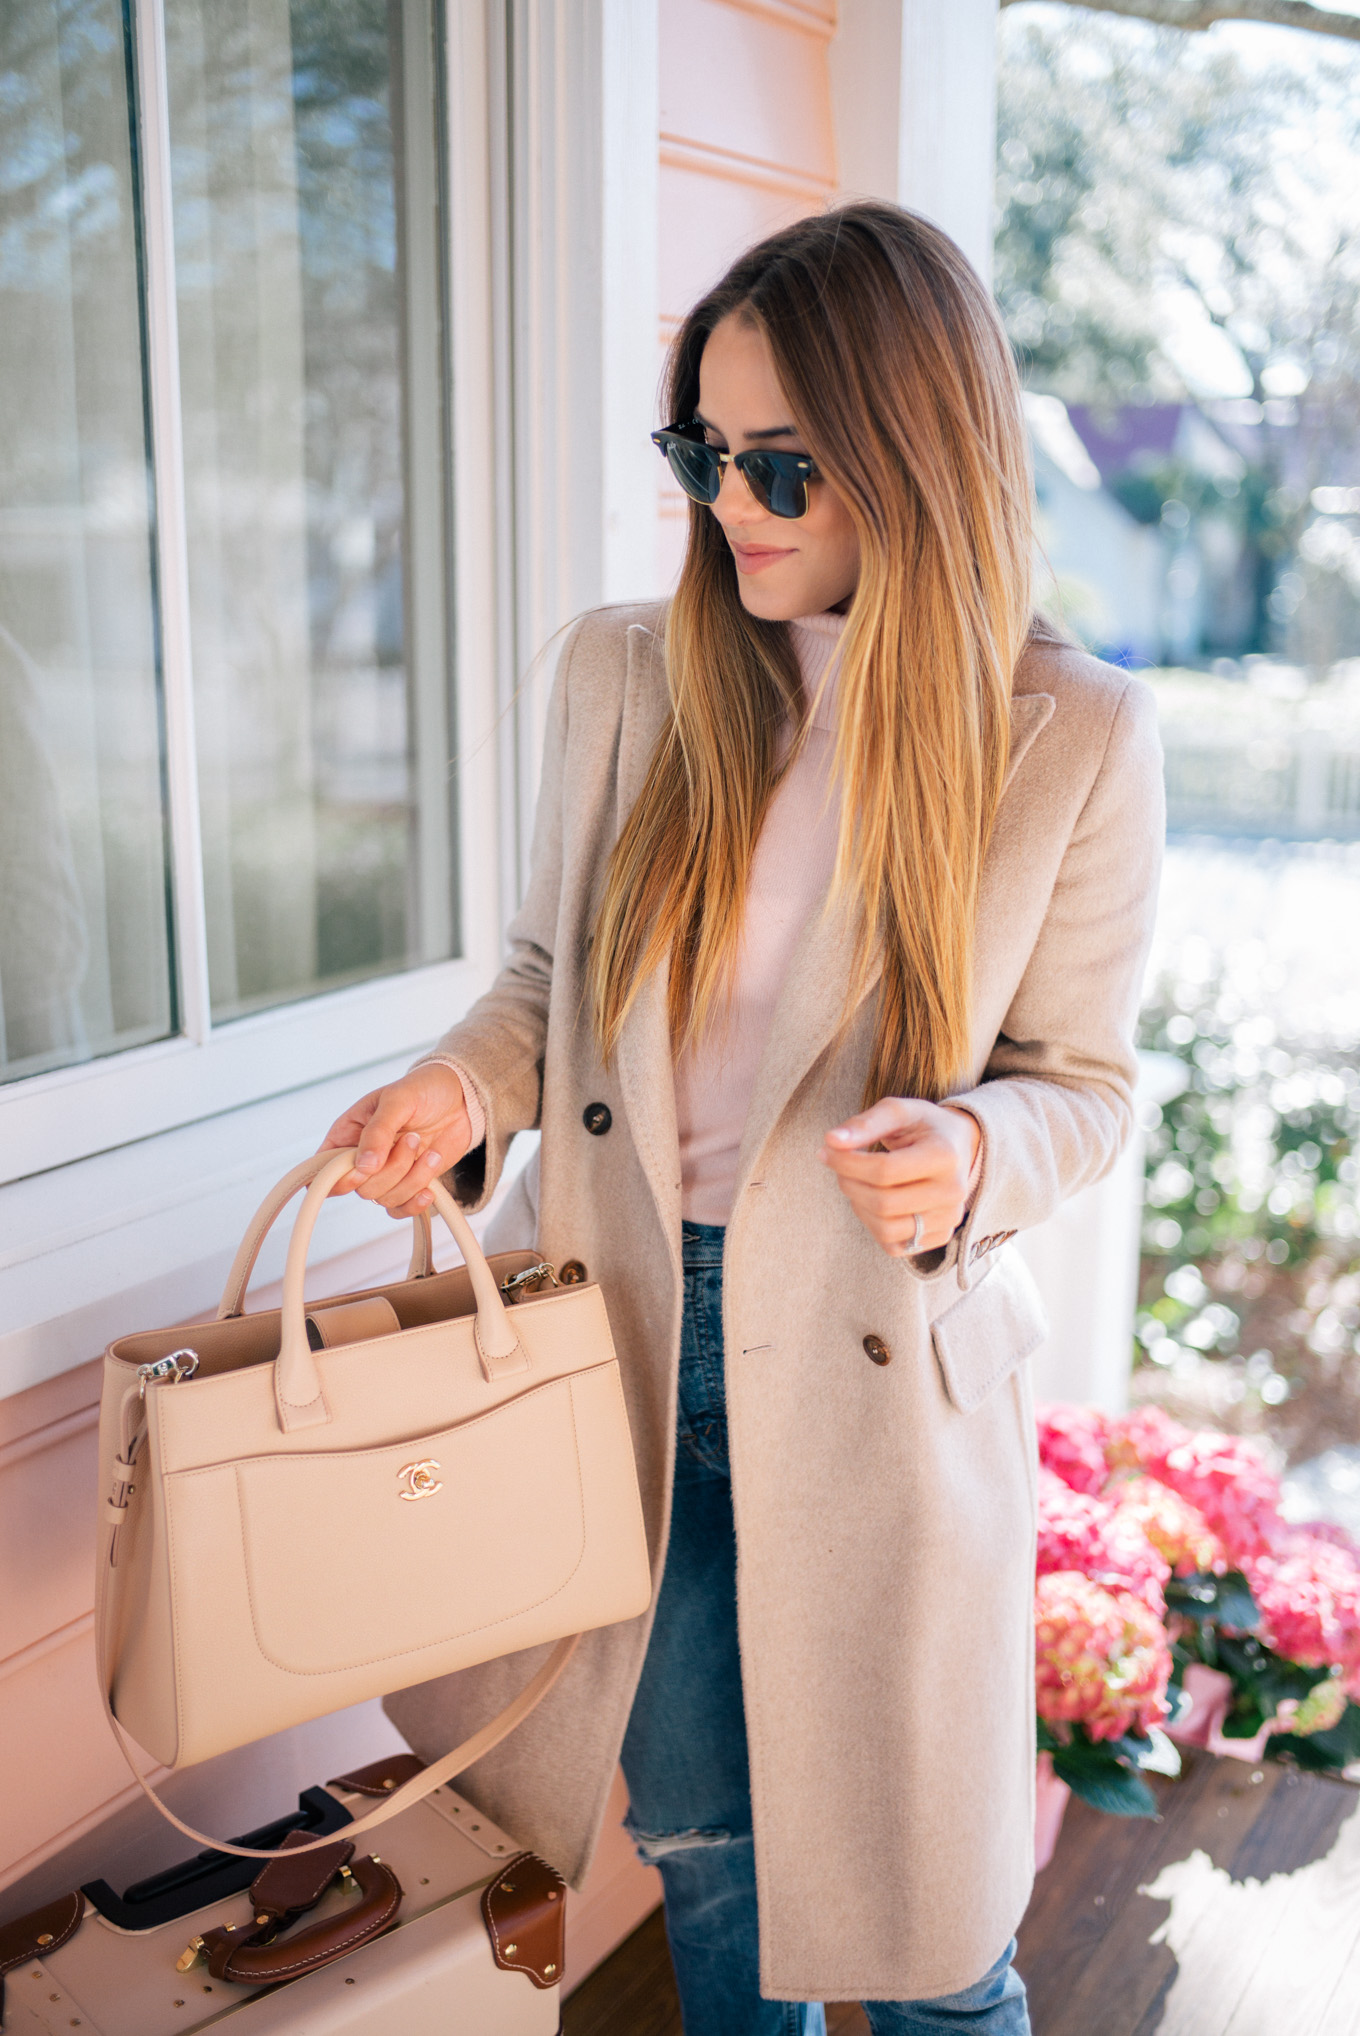 gmg-traveling-in-style-1006922